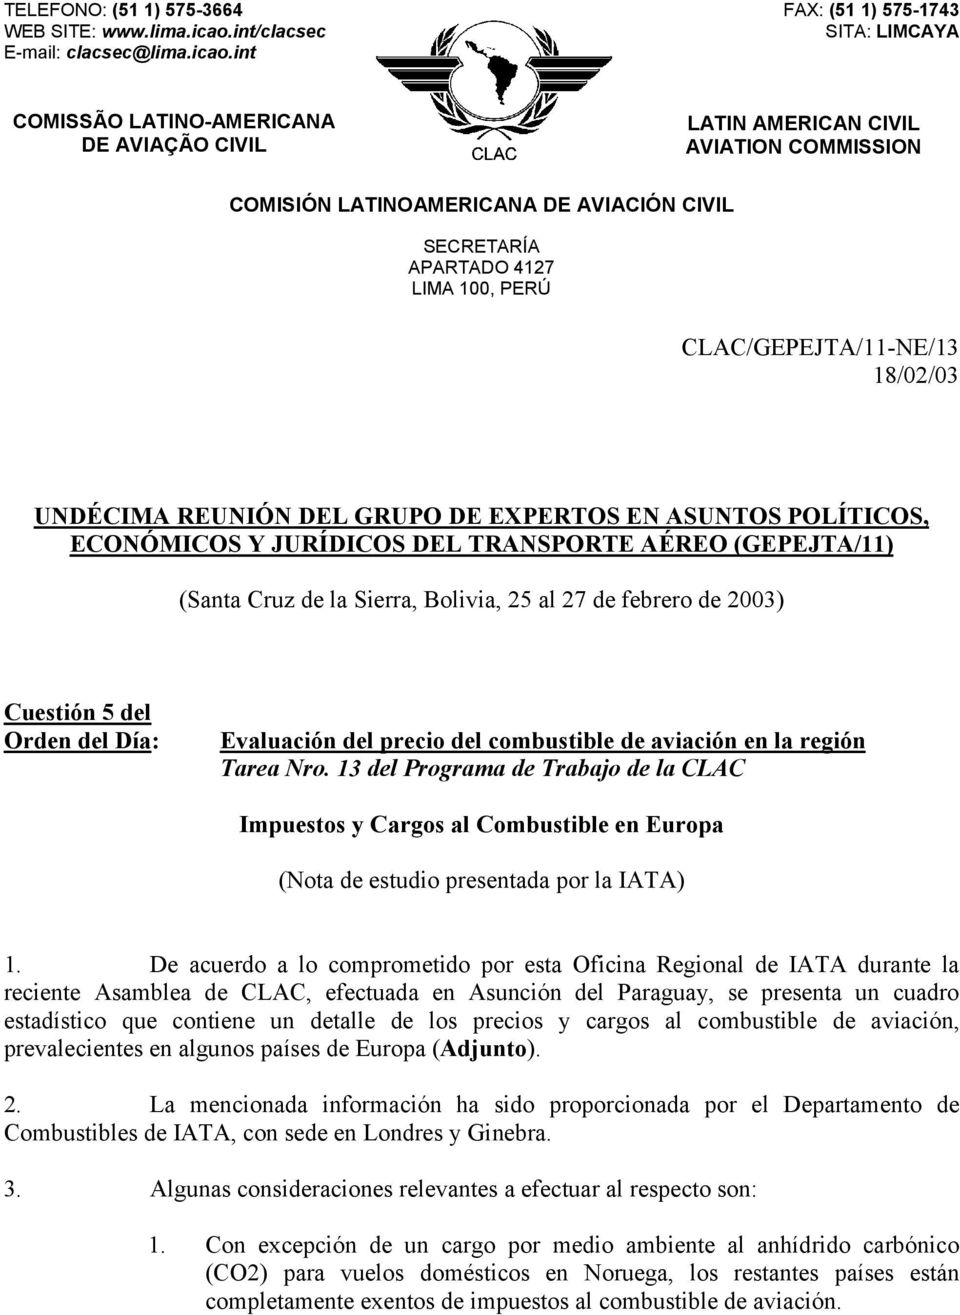 int FAX: (51 1) 575-1743 SITA: LIMCAYA COMISSÃO LATINO-AMERICANA DE AVIAÇÃO CIVIL LATIN AMERICAN CIVIL AVIATION COMMISSION COMISIÓN LATINOAMERICANA DE AVIACIÓN CIVIL SECRETARÍA APARTADO 4127 LIMA